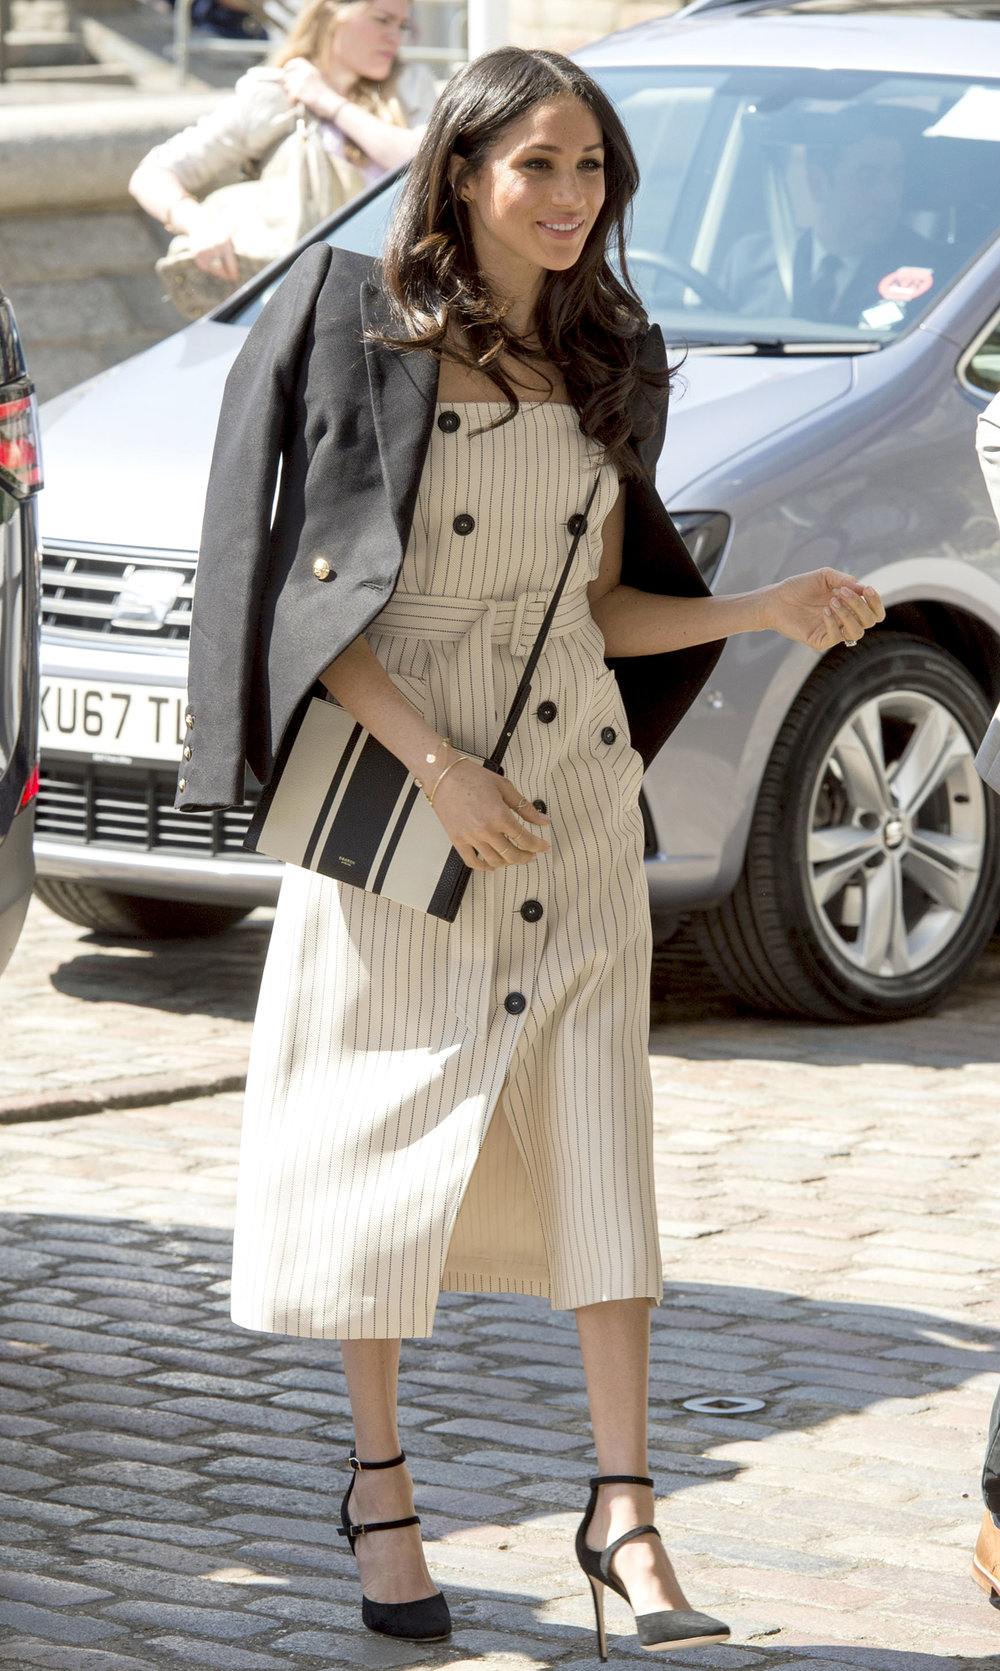 CHOGM London 2018 - Day 3 SOURCE:  http://people.com/royals/everything-you-need-to-copy-meghan-markles-chic-style/#chogm-london-2018-day-3